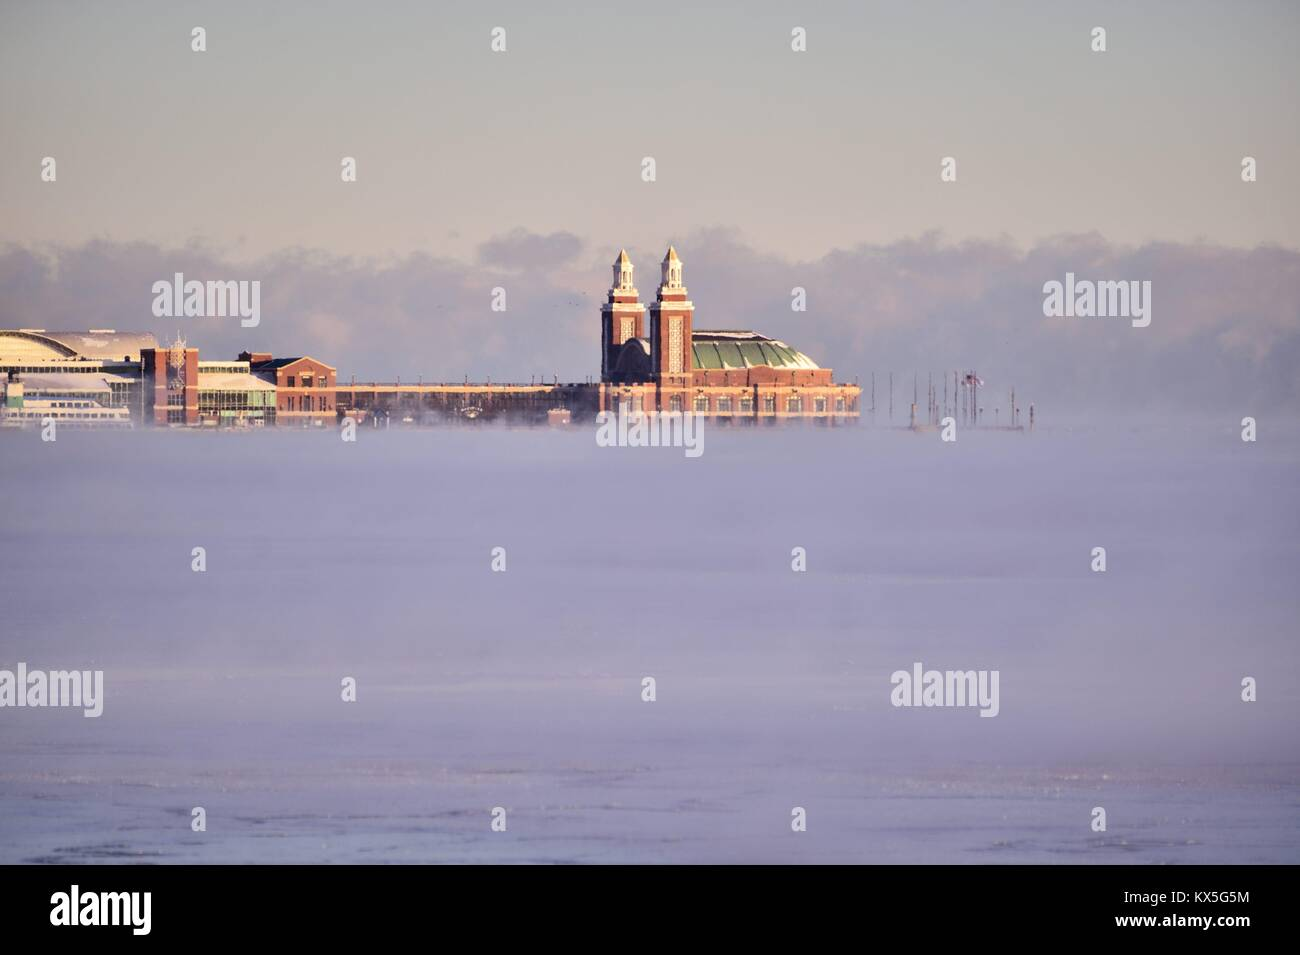 Winds and bitter cold temperatures worked to create vapor above the ice in Lake Michgan and Burnham Harbor that - Stock Image